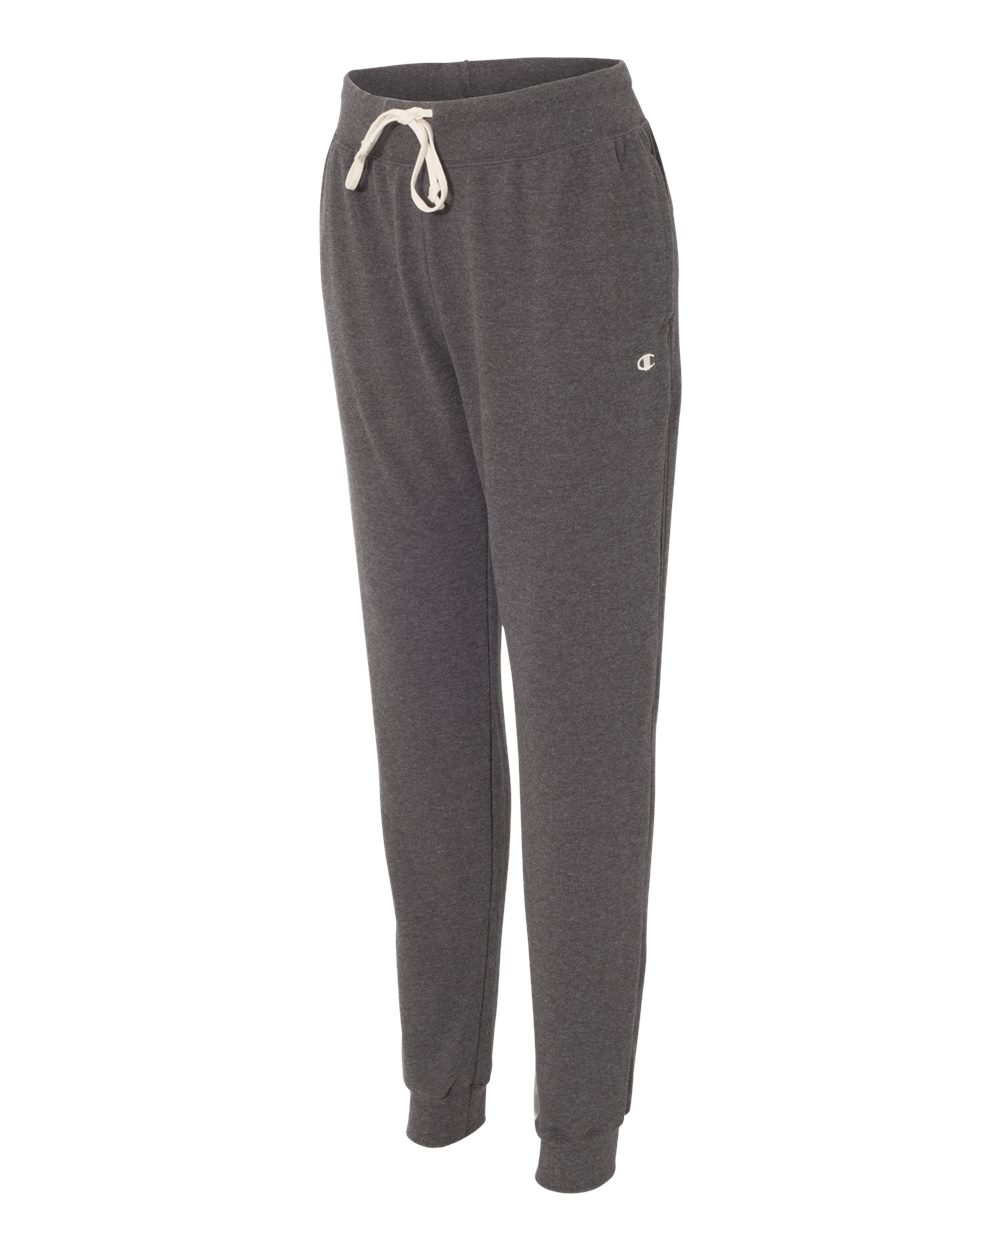 Champion AO750 - Authentic Originals Women's French Terry Jogger